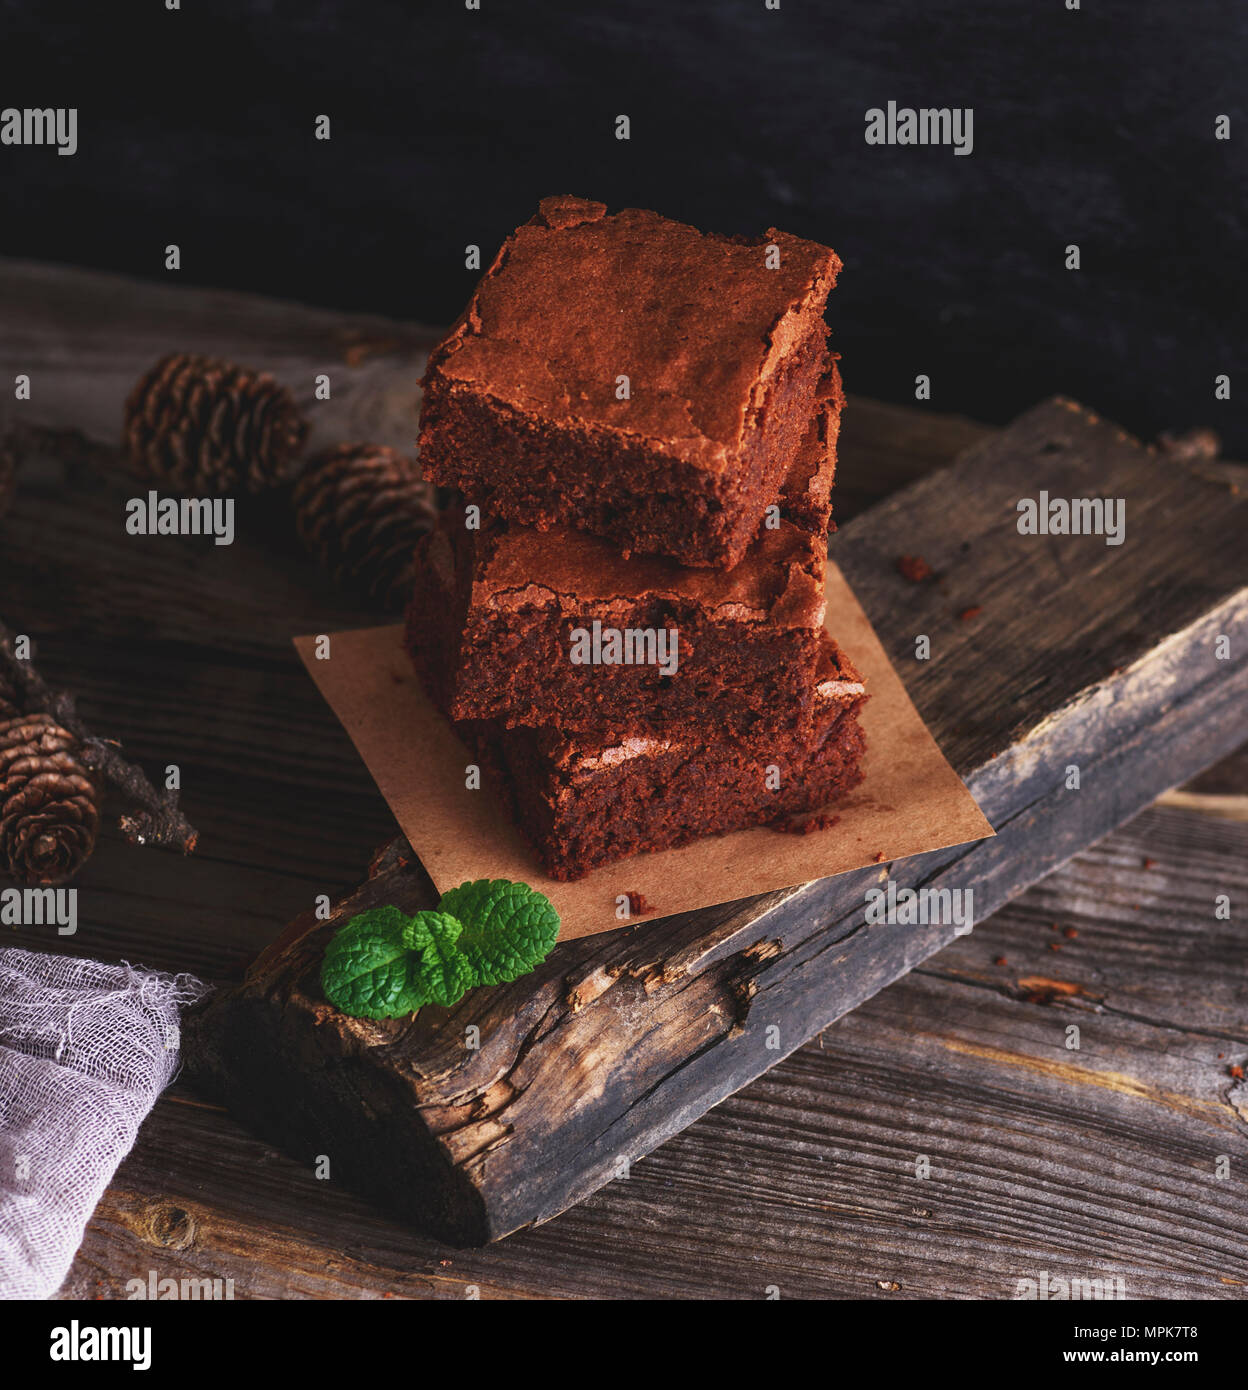 a stack of square pieces of brownie pie on a gray wooden plank, top view - Stock Image